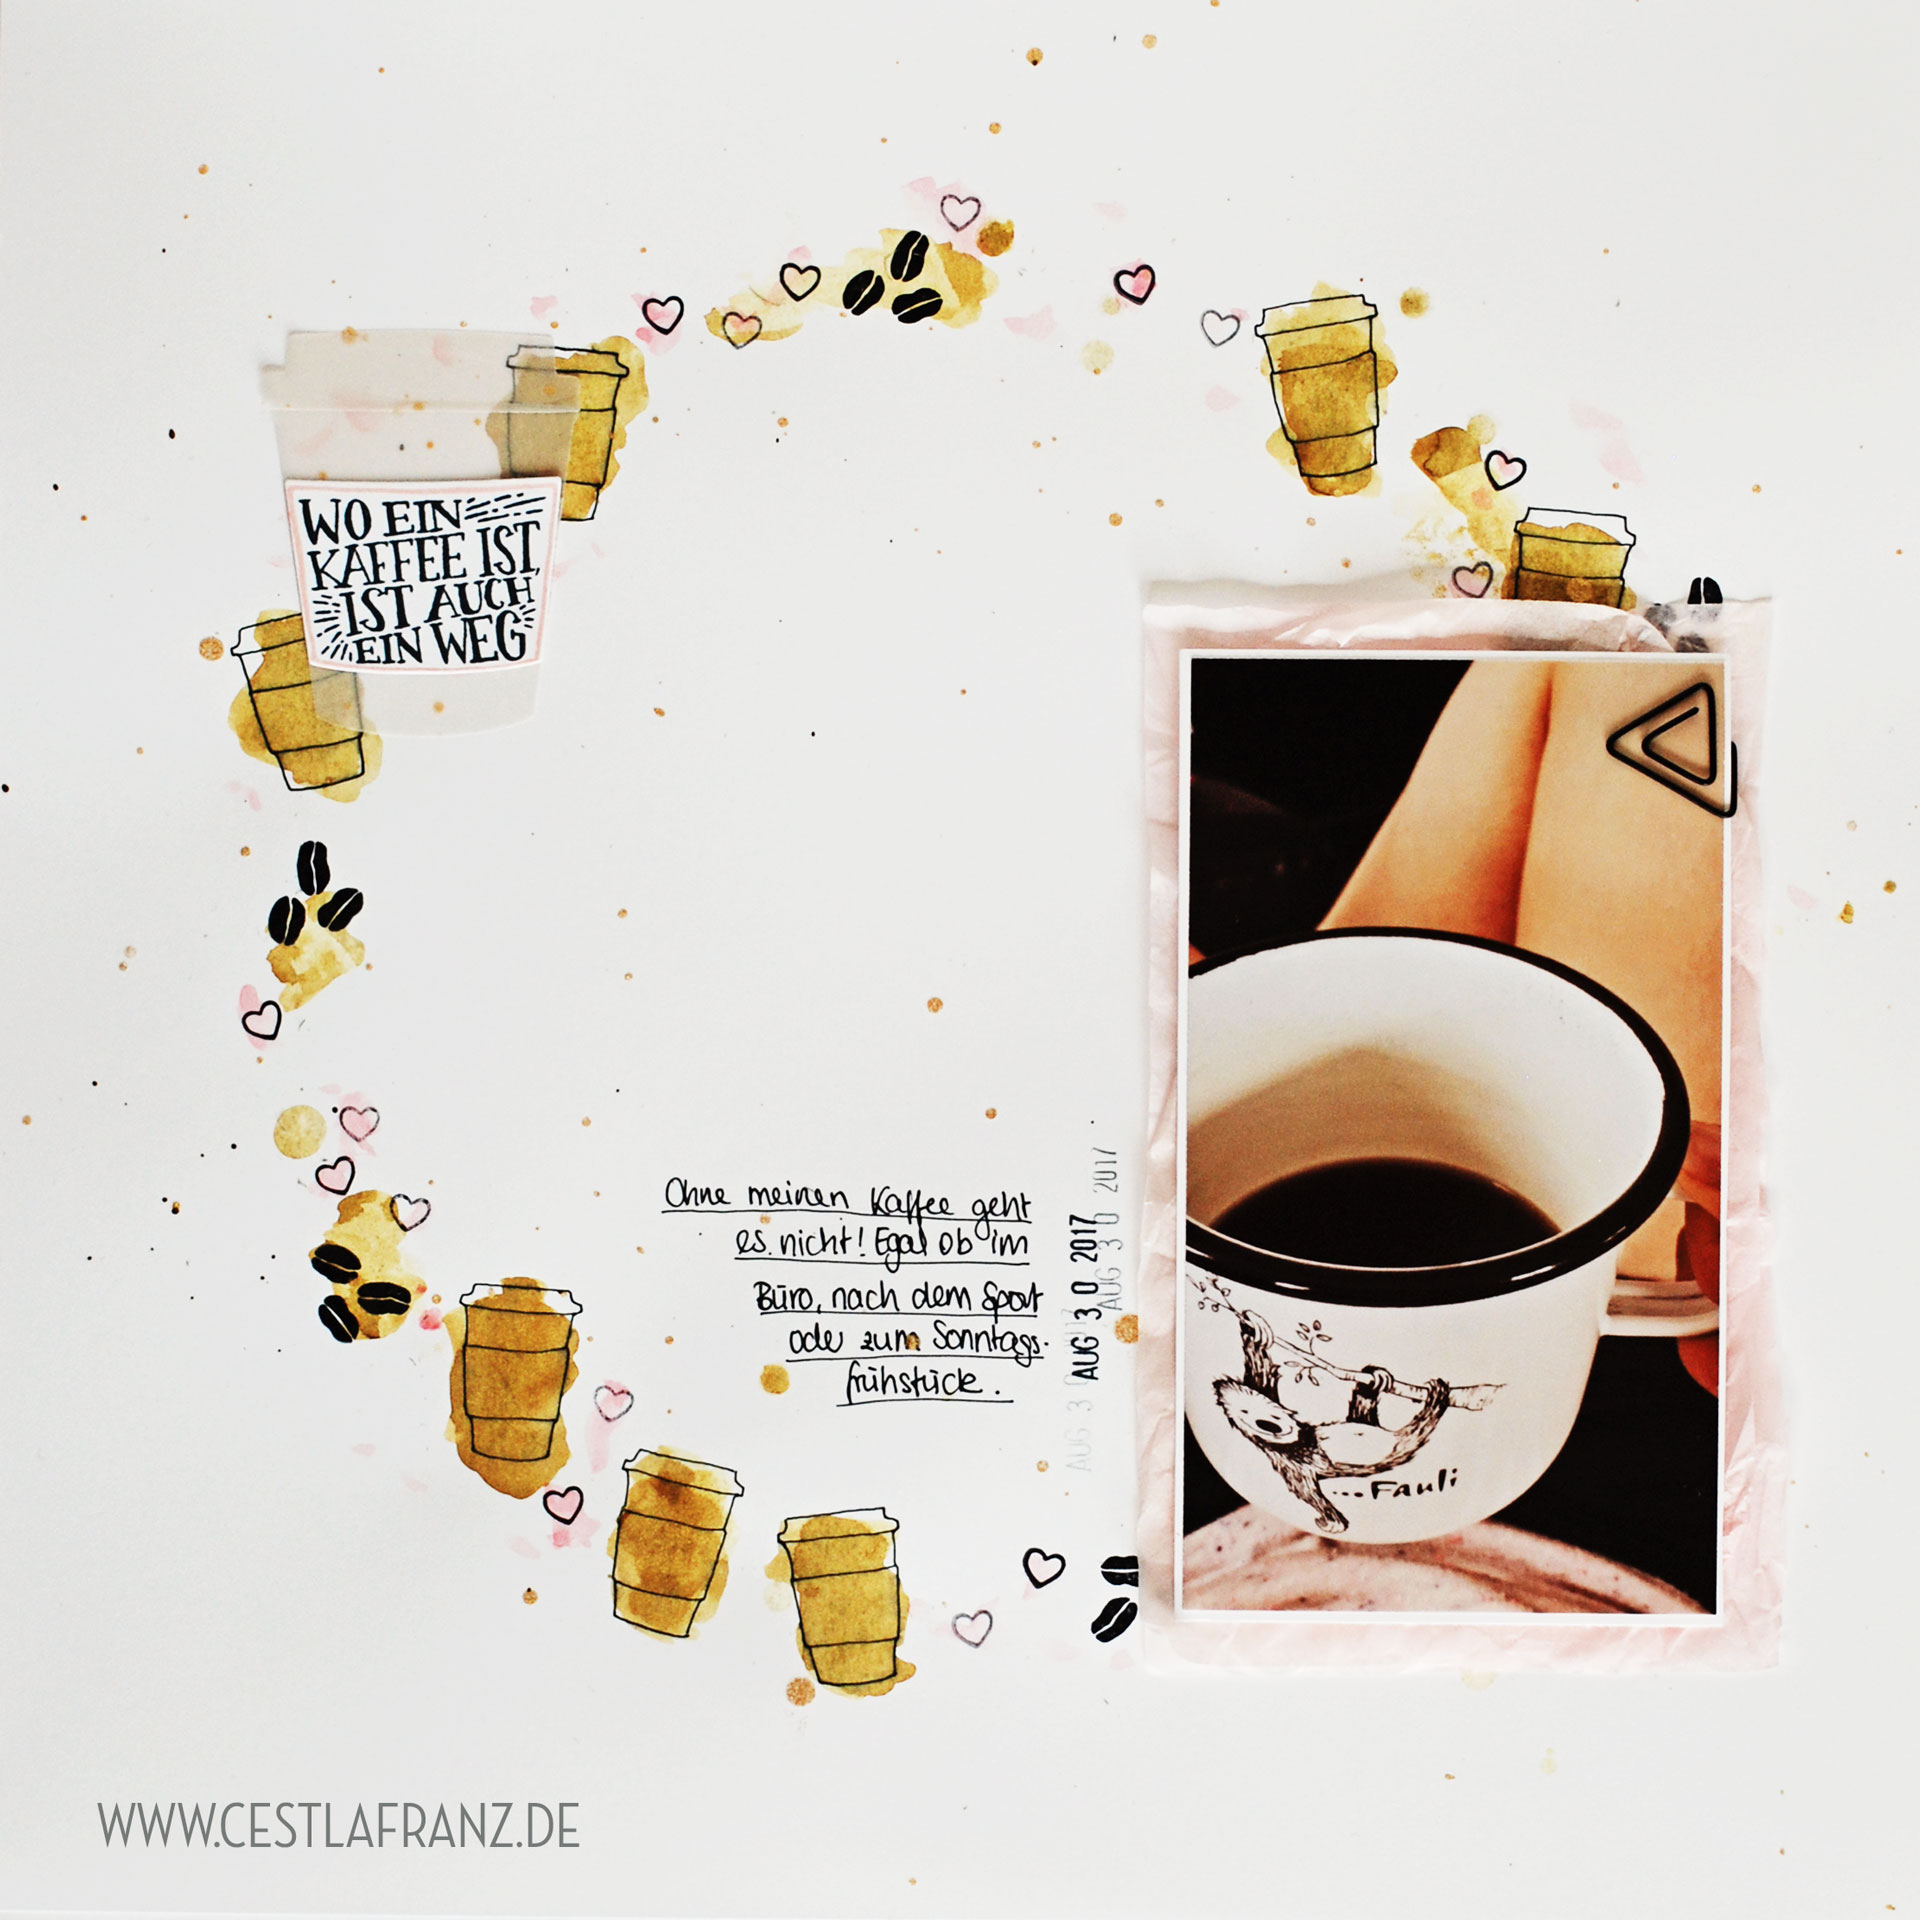 Kaffee olé Layout Kaffeepause Inspiration & Art